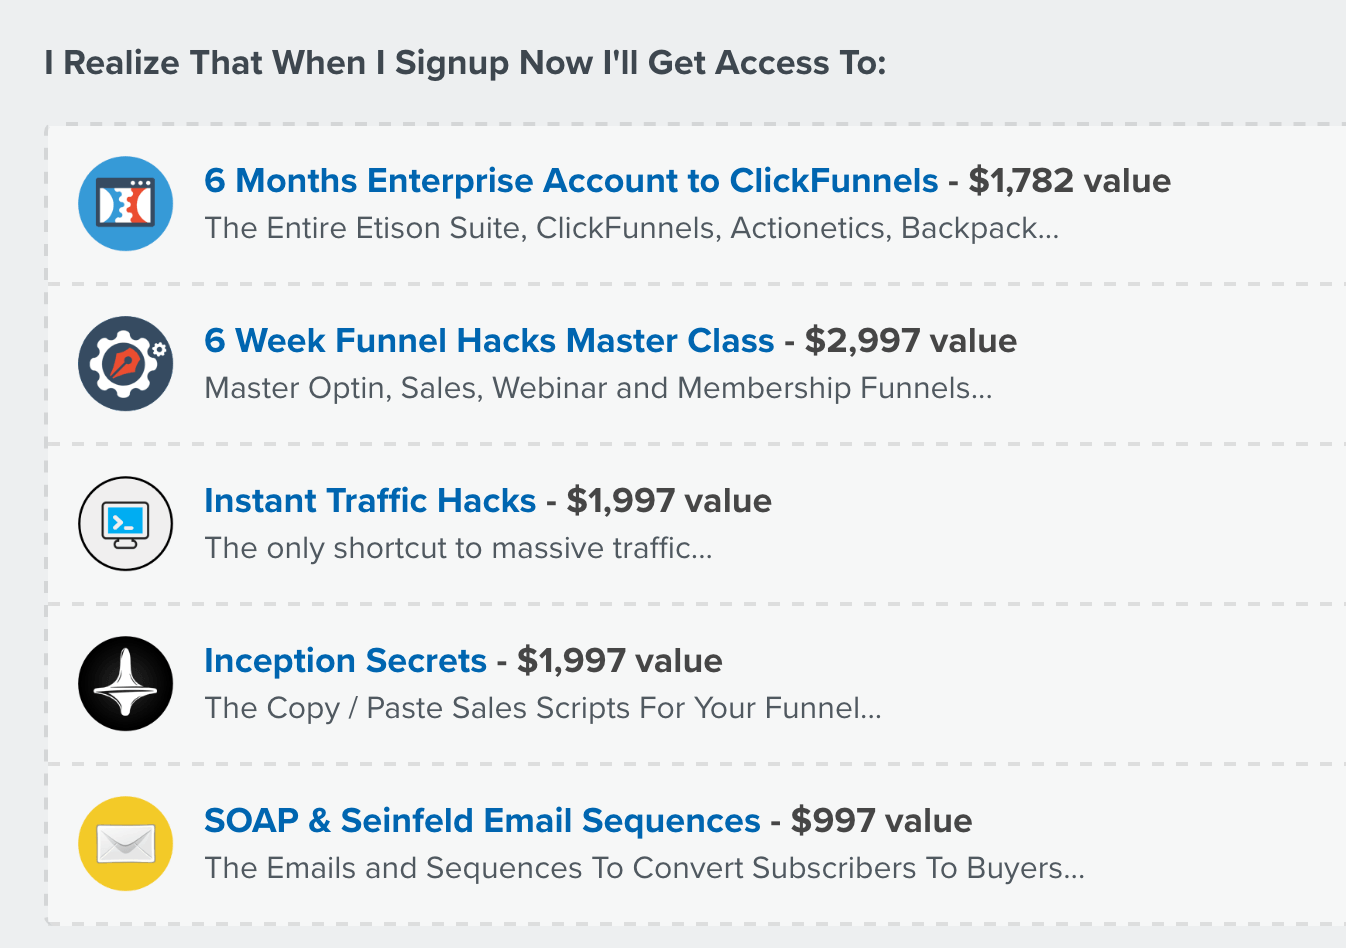 Clickfunnels Offers